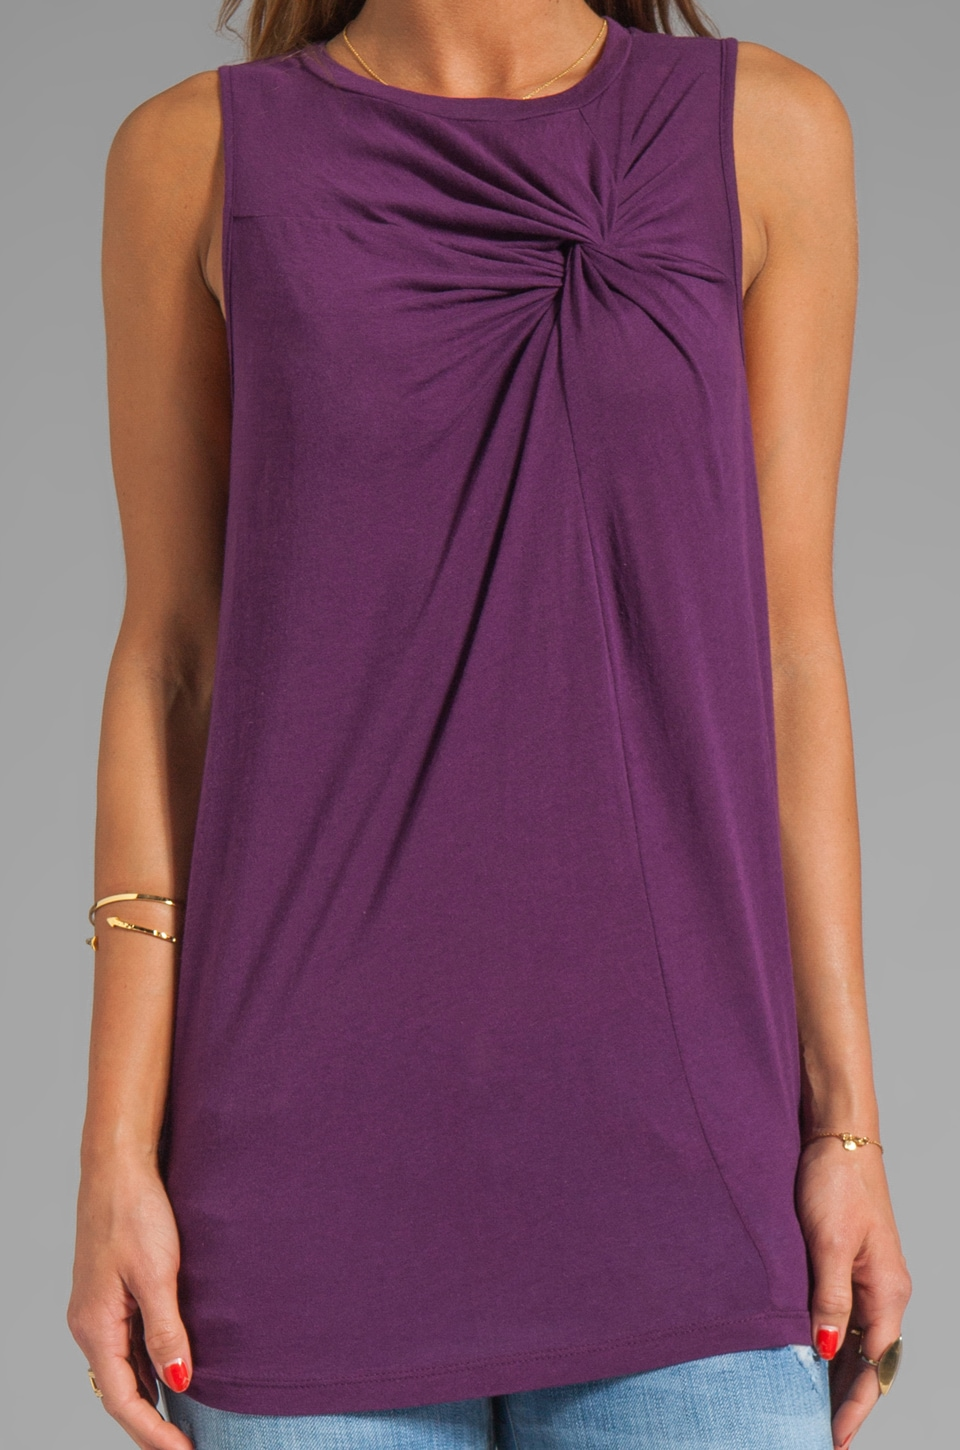 Elizabeth and James Larissa Tank in Aubergine